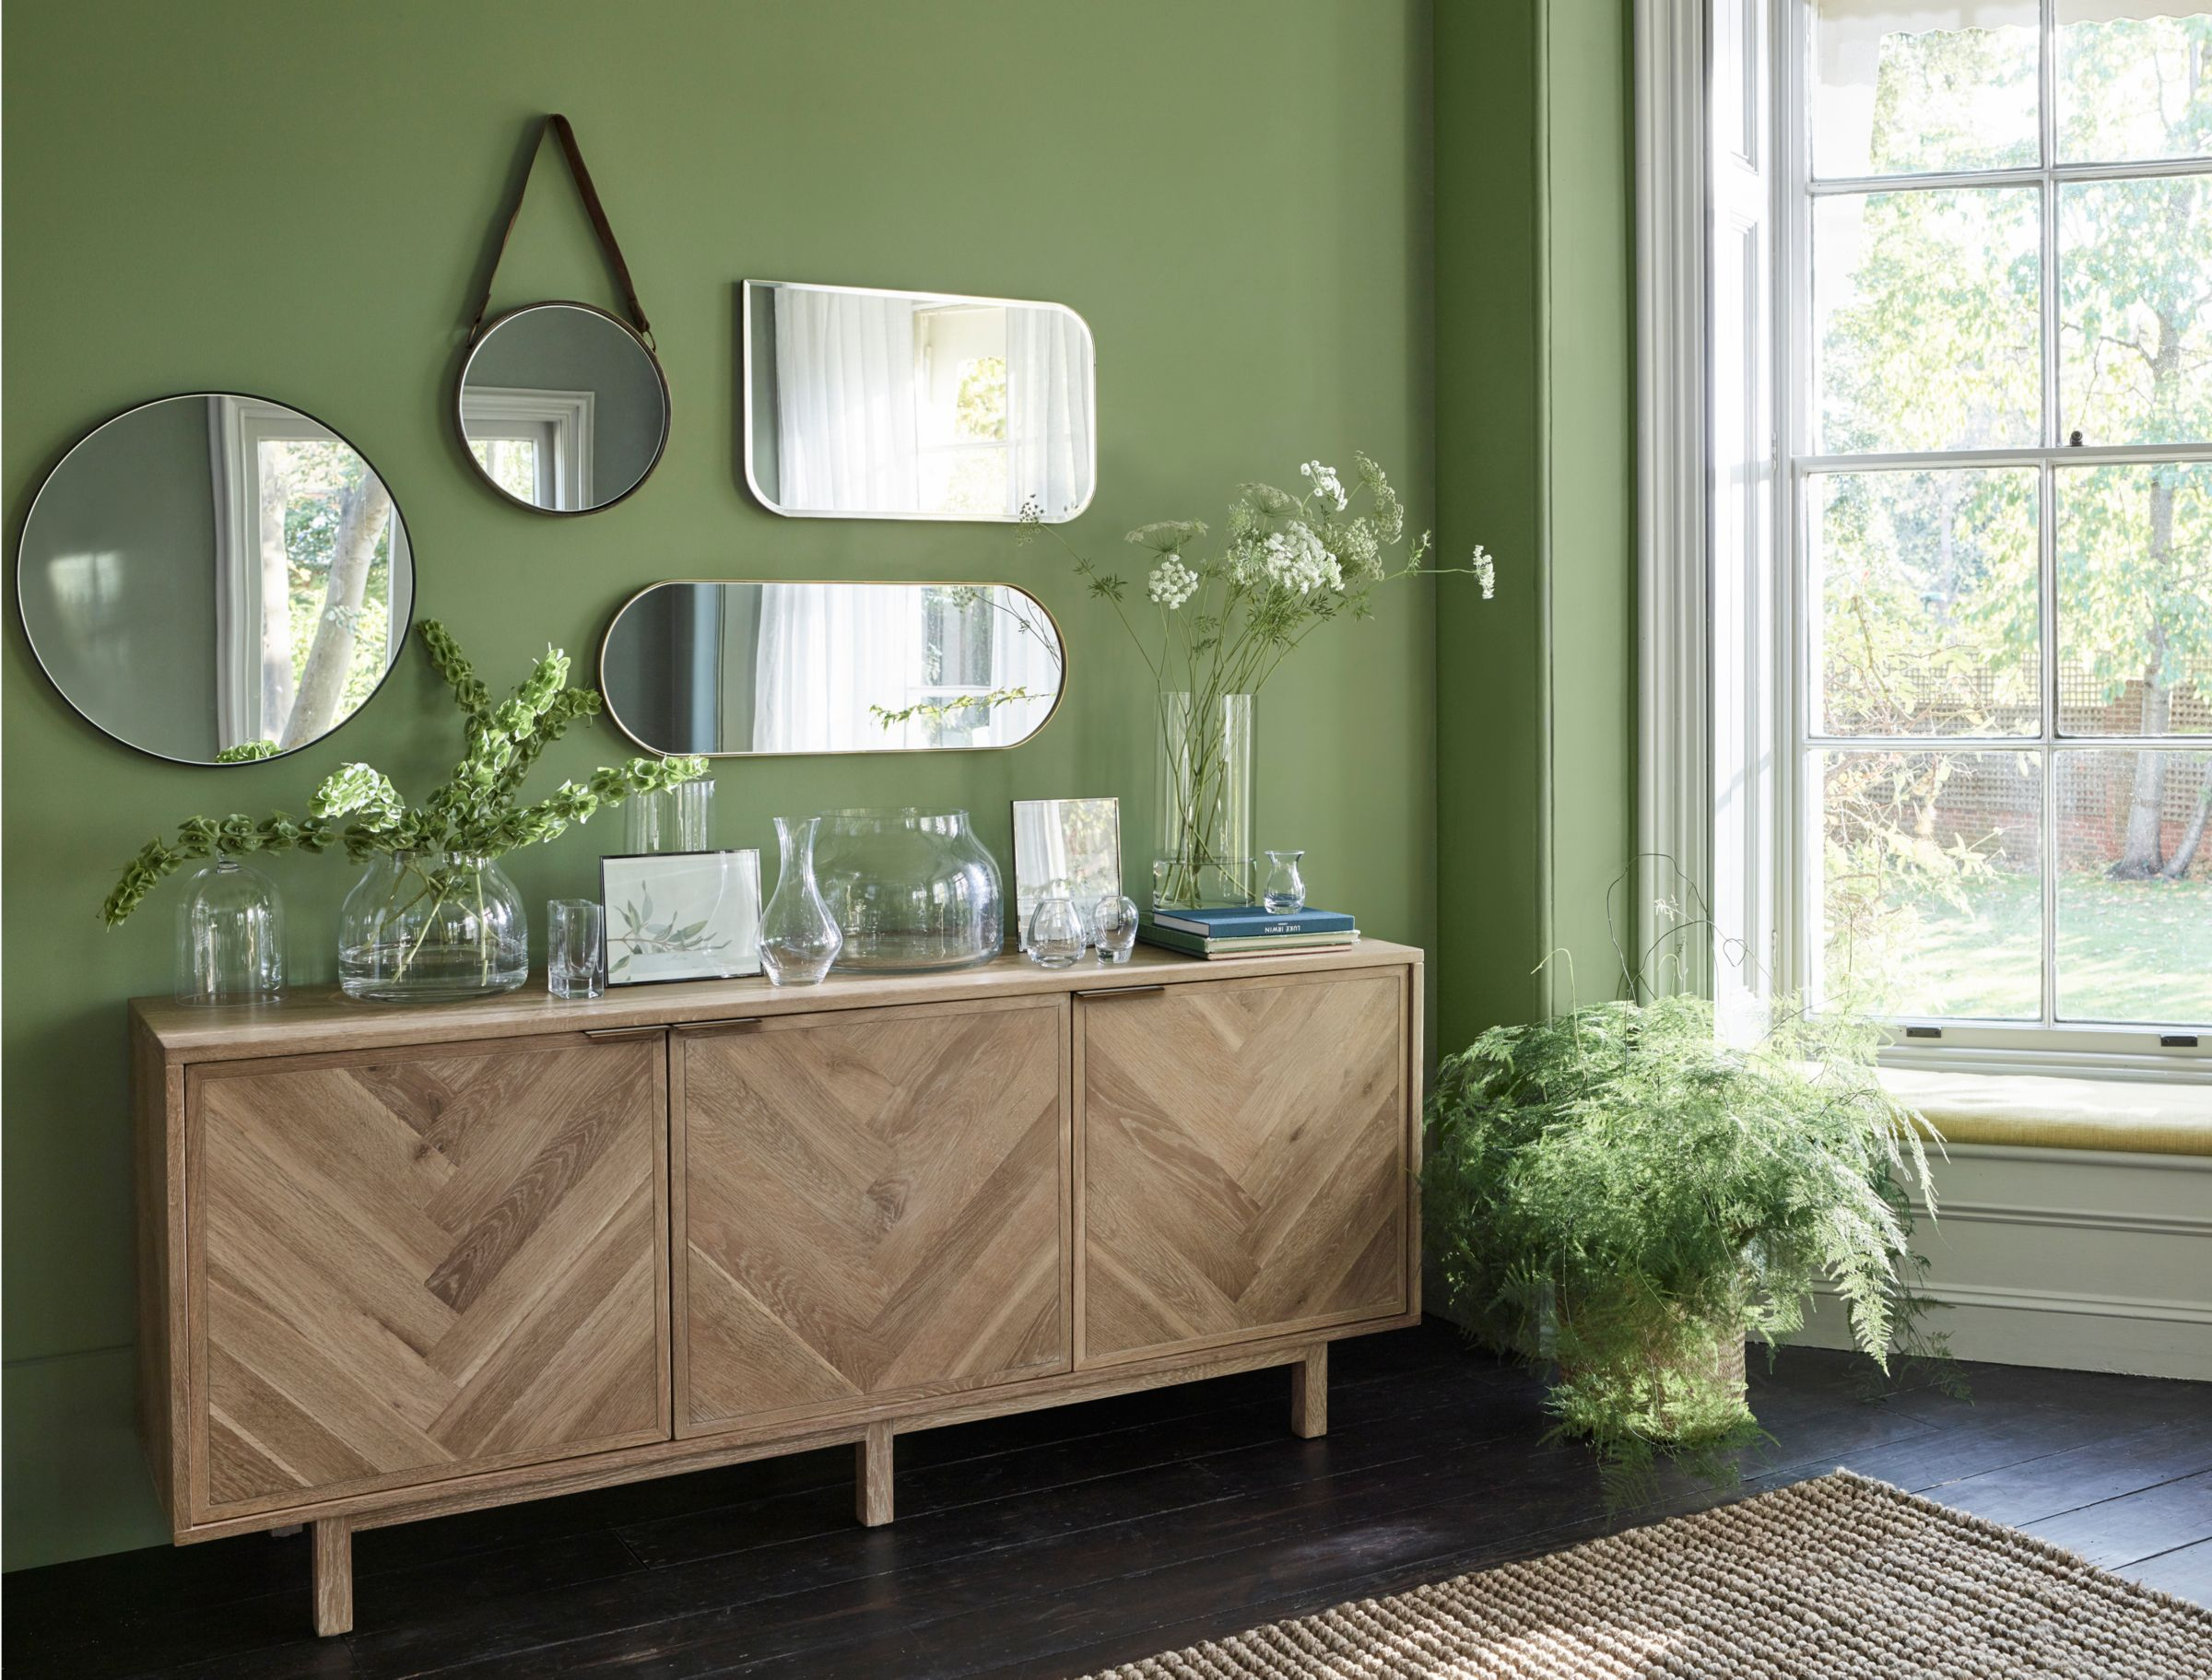 Green wall with mirrors and wooden cabinet